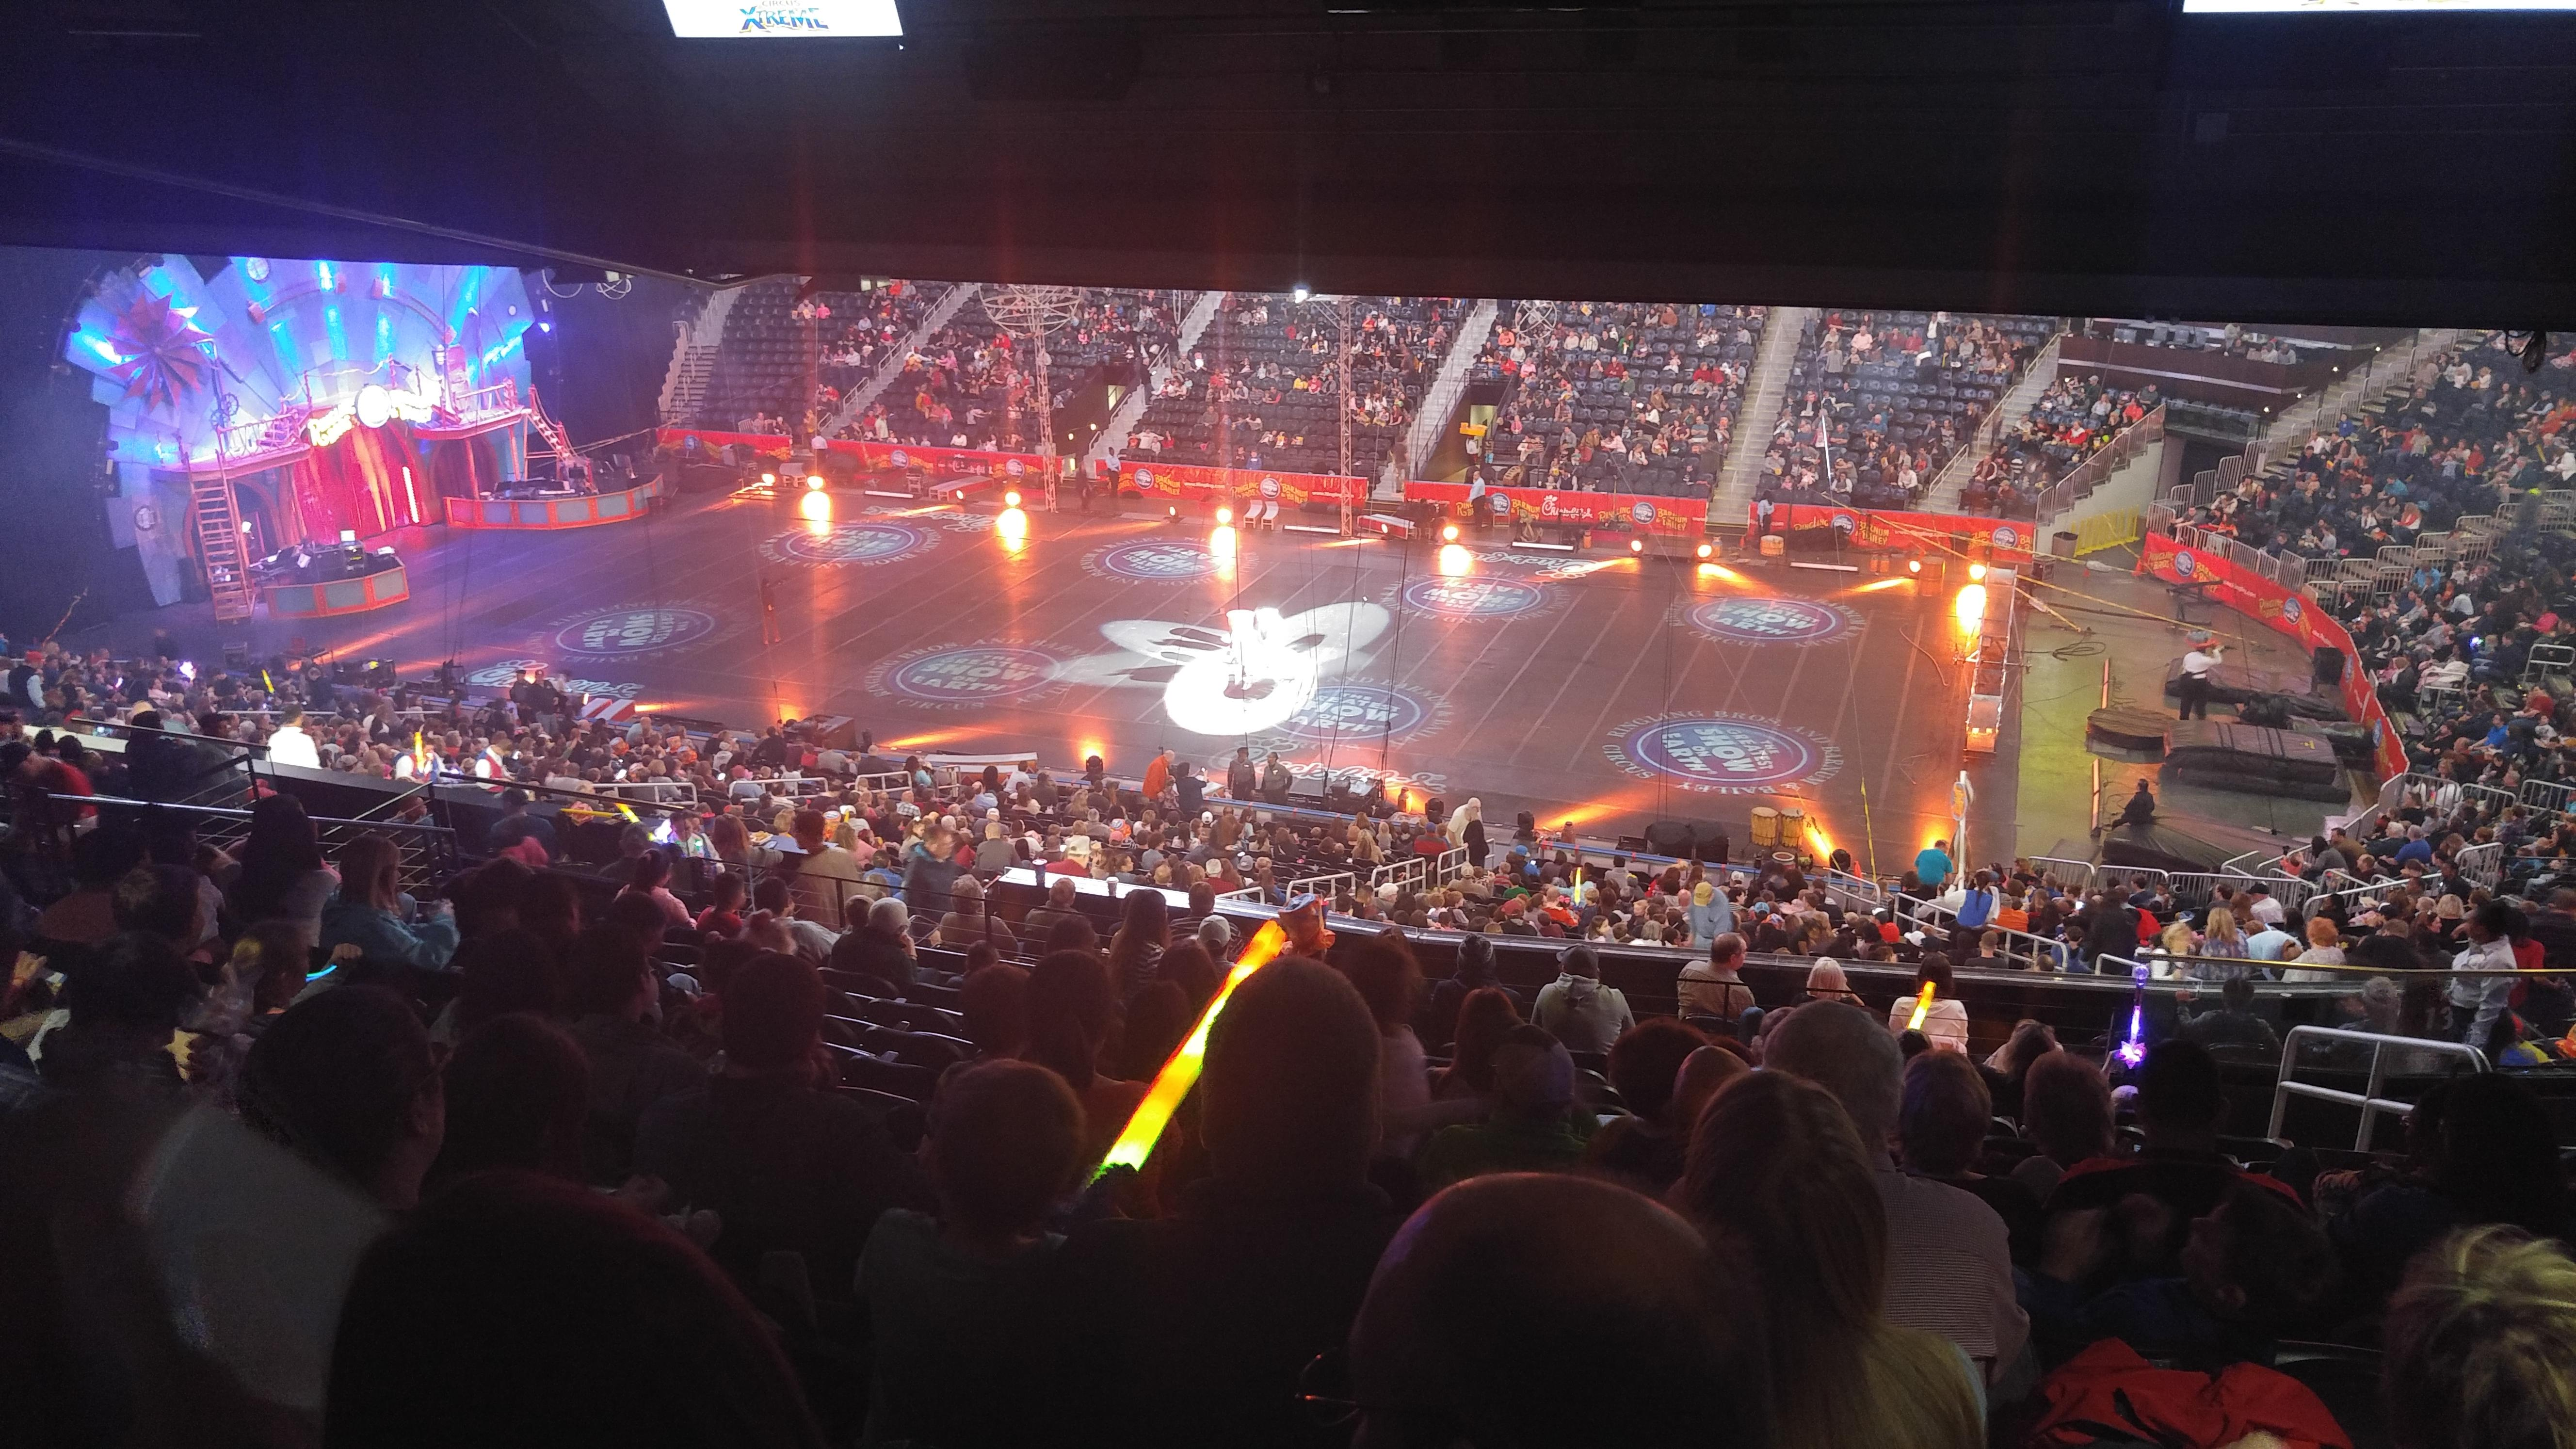 State Farm Arena Section 210 Row M Seat 5